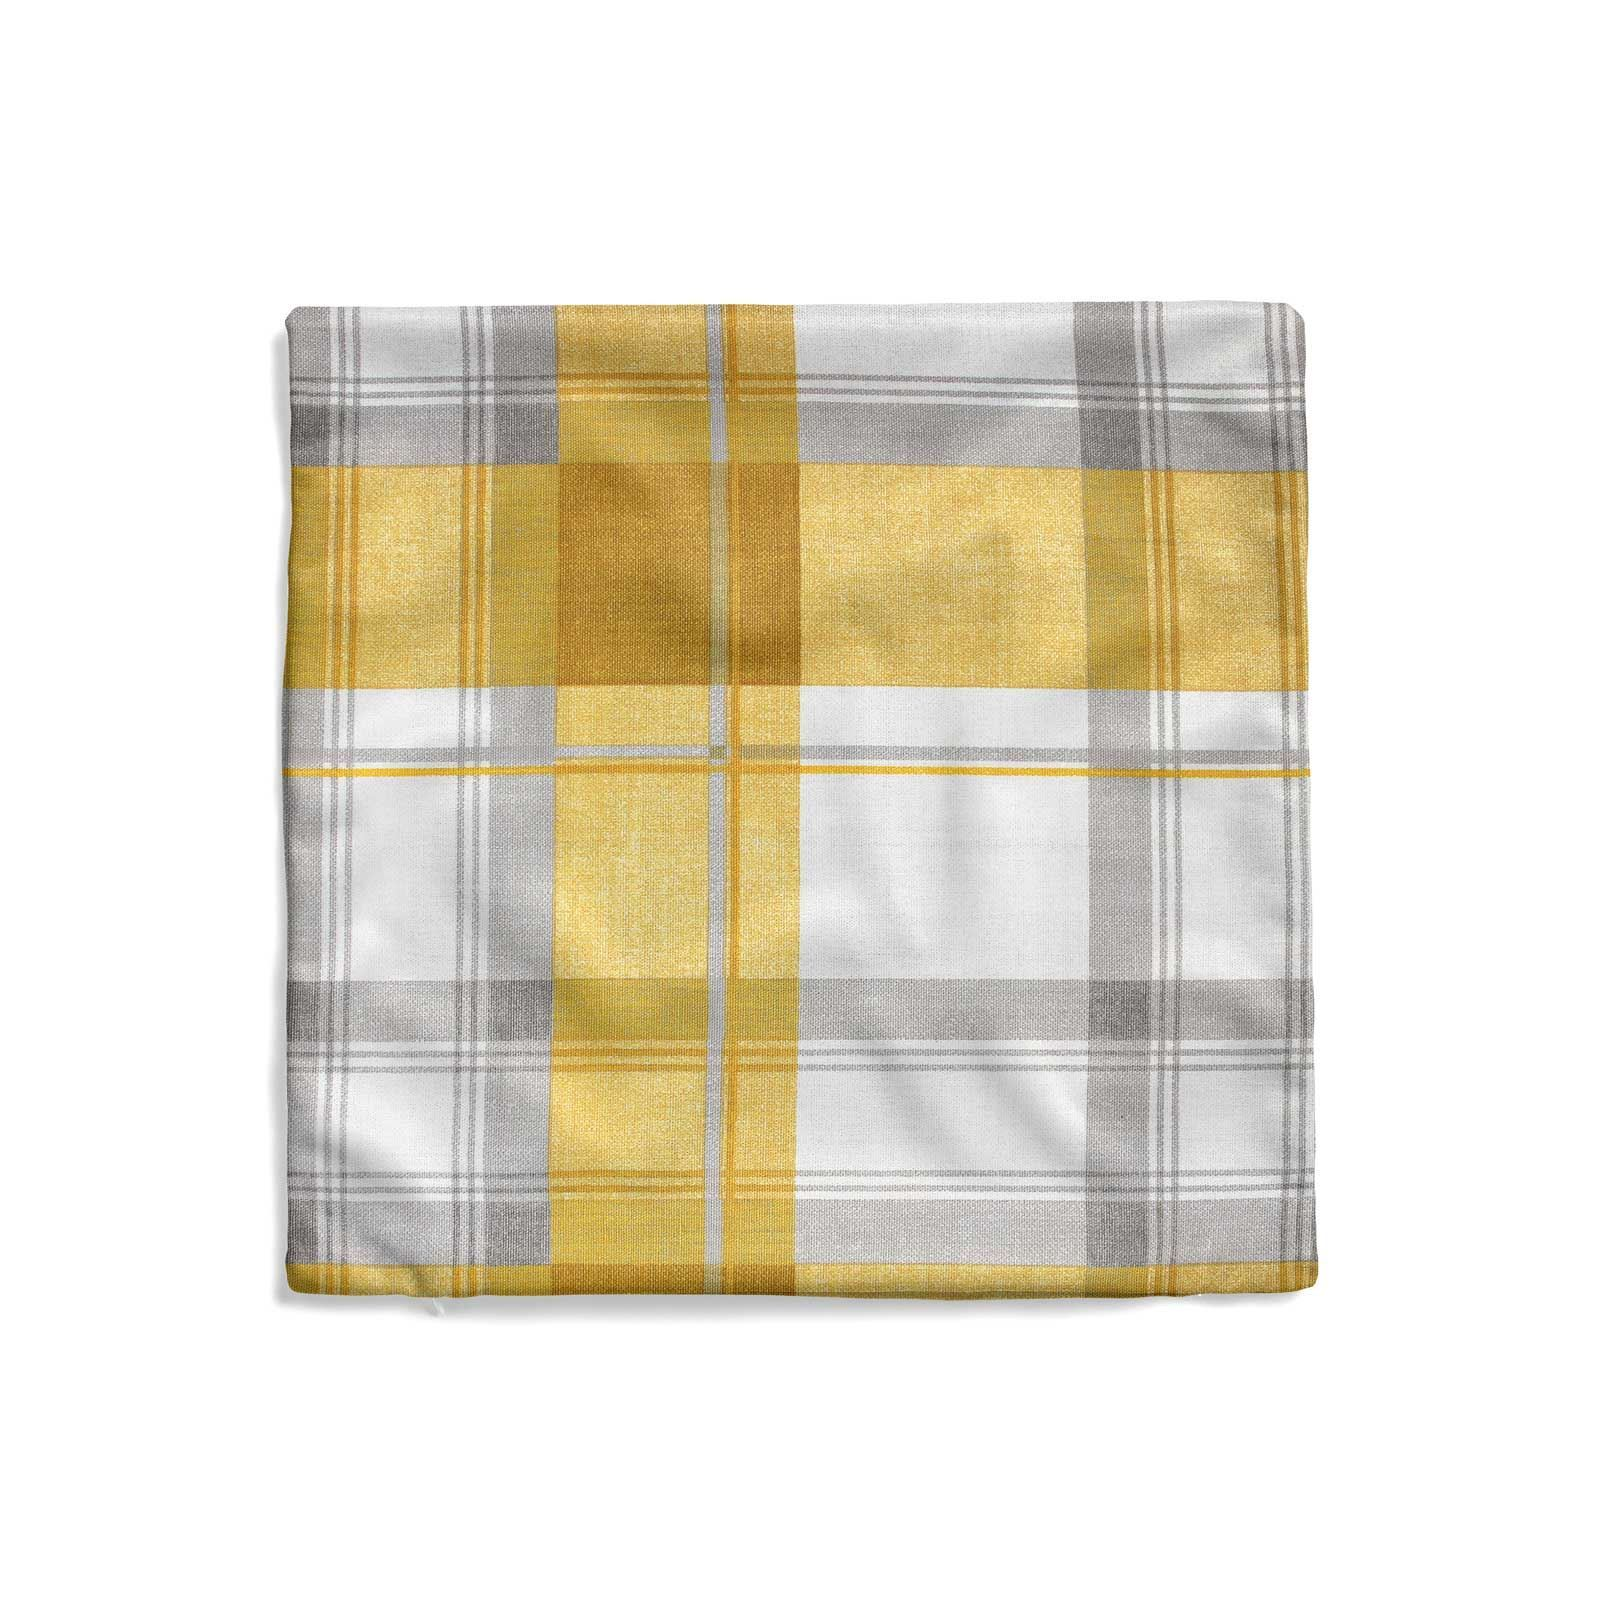 Grey-Ochre-Mustard-Cushion-Cover-Collection-17-034-18-034-Covers-Filled-Cushions thumbnail 22